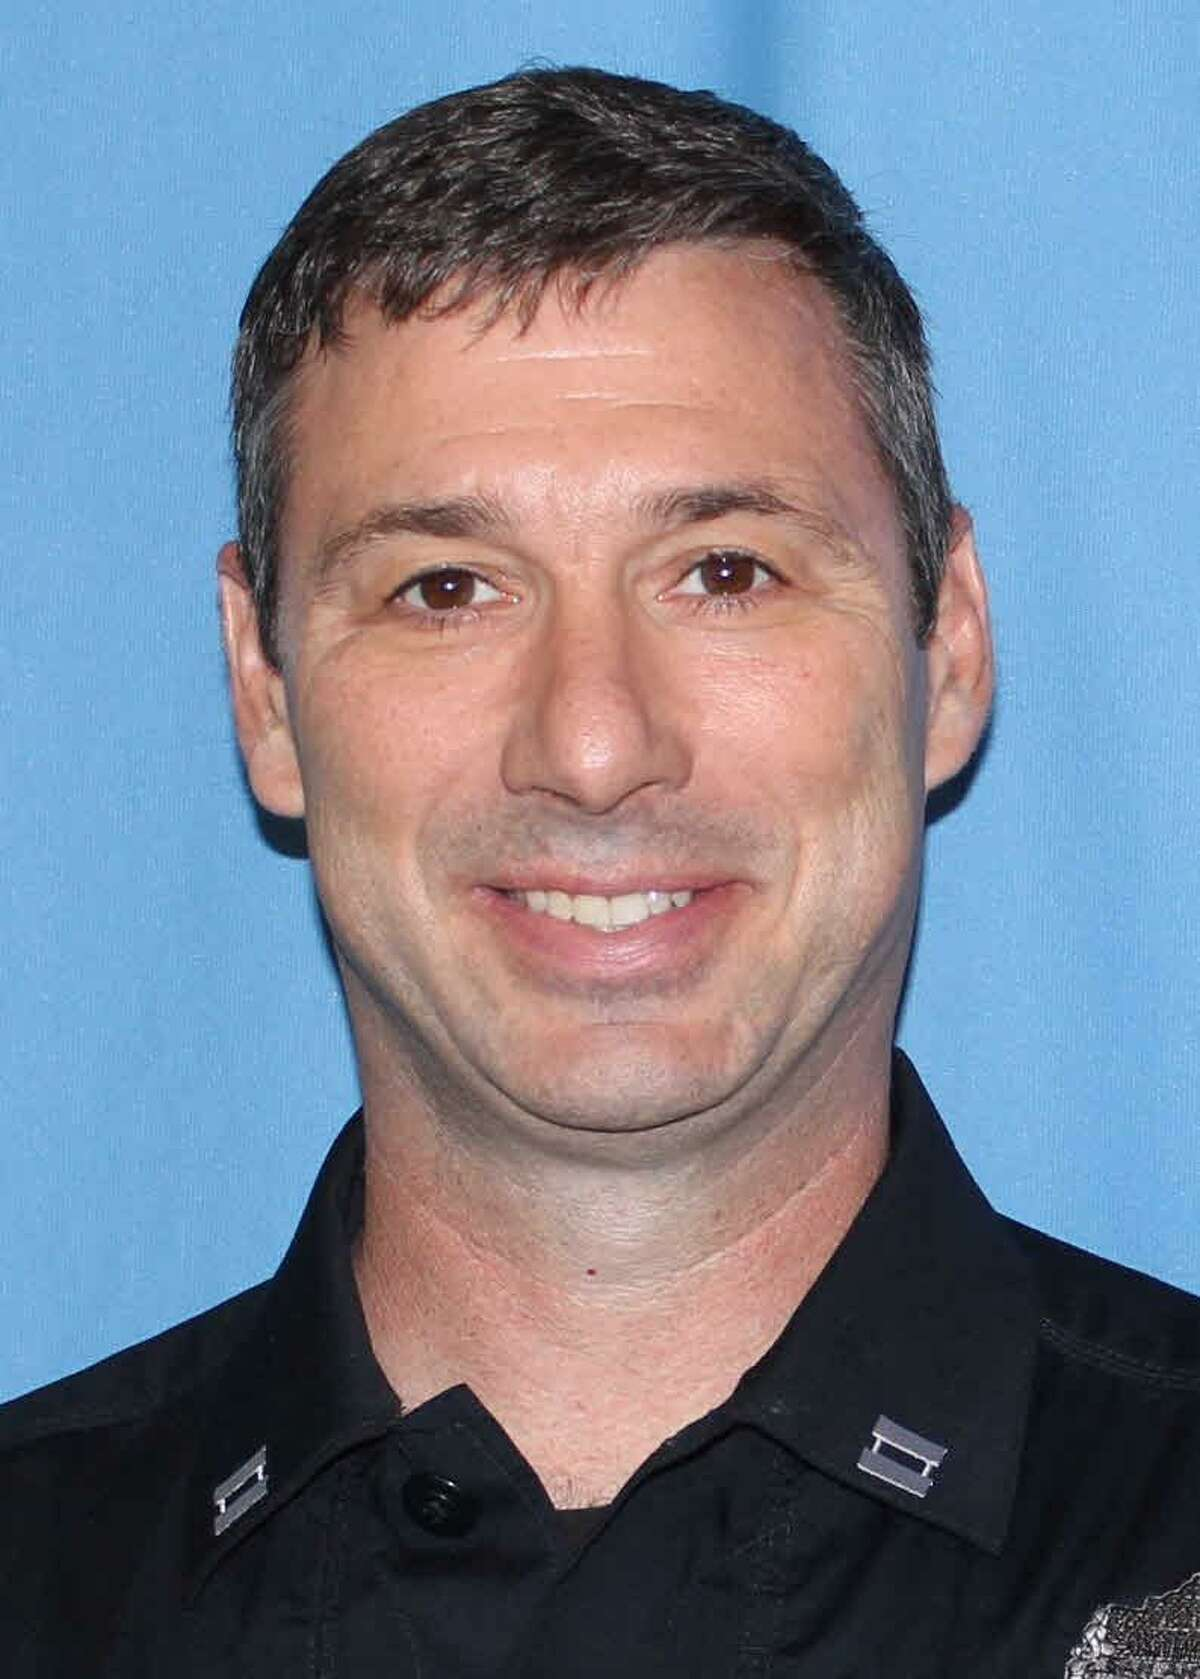 Former San Antonio Police Department Capt. Shawn Ury was fired in March 2017 for insubordination after he refused to quit his off-duty job at USAA. He had been with the department for 23 years.